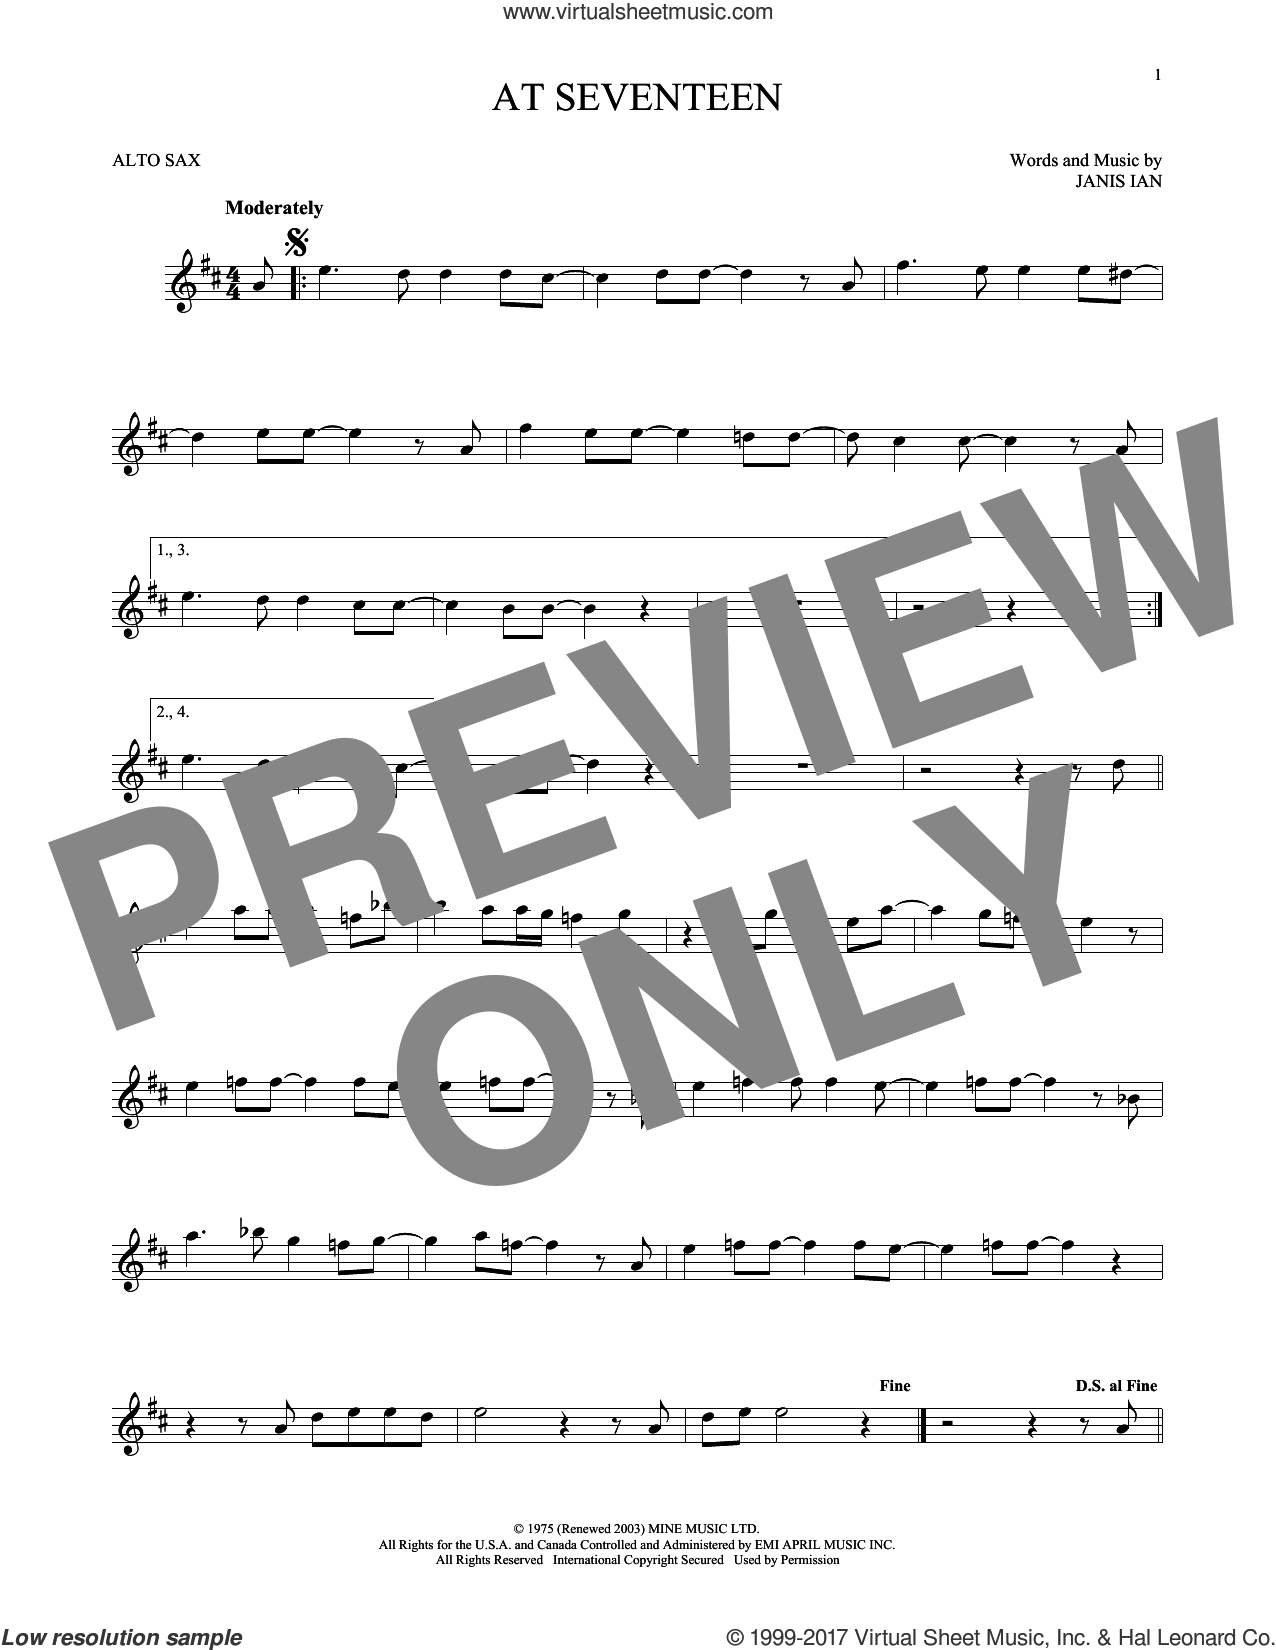 At Seventeen sheet music for alto saxophone solo by Janis Ian, intermediate skill level